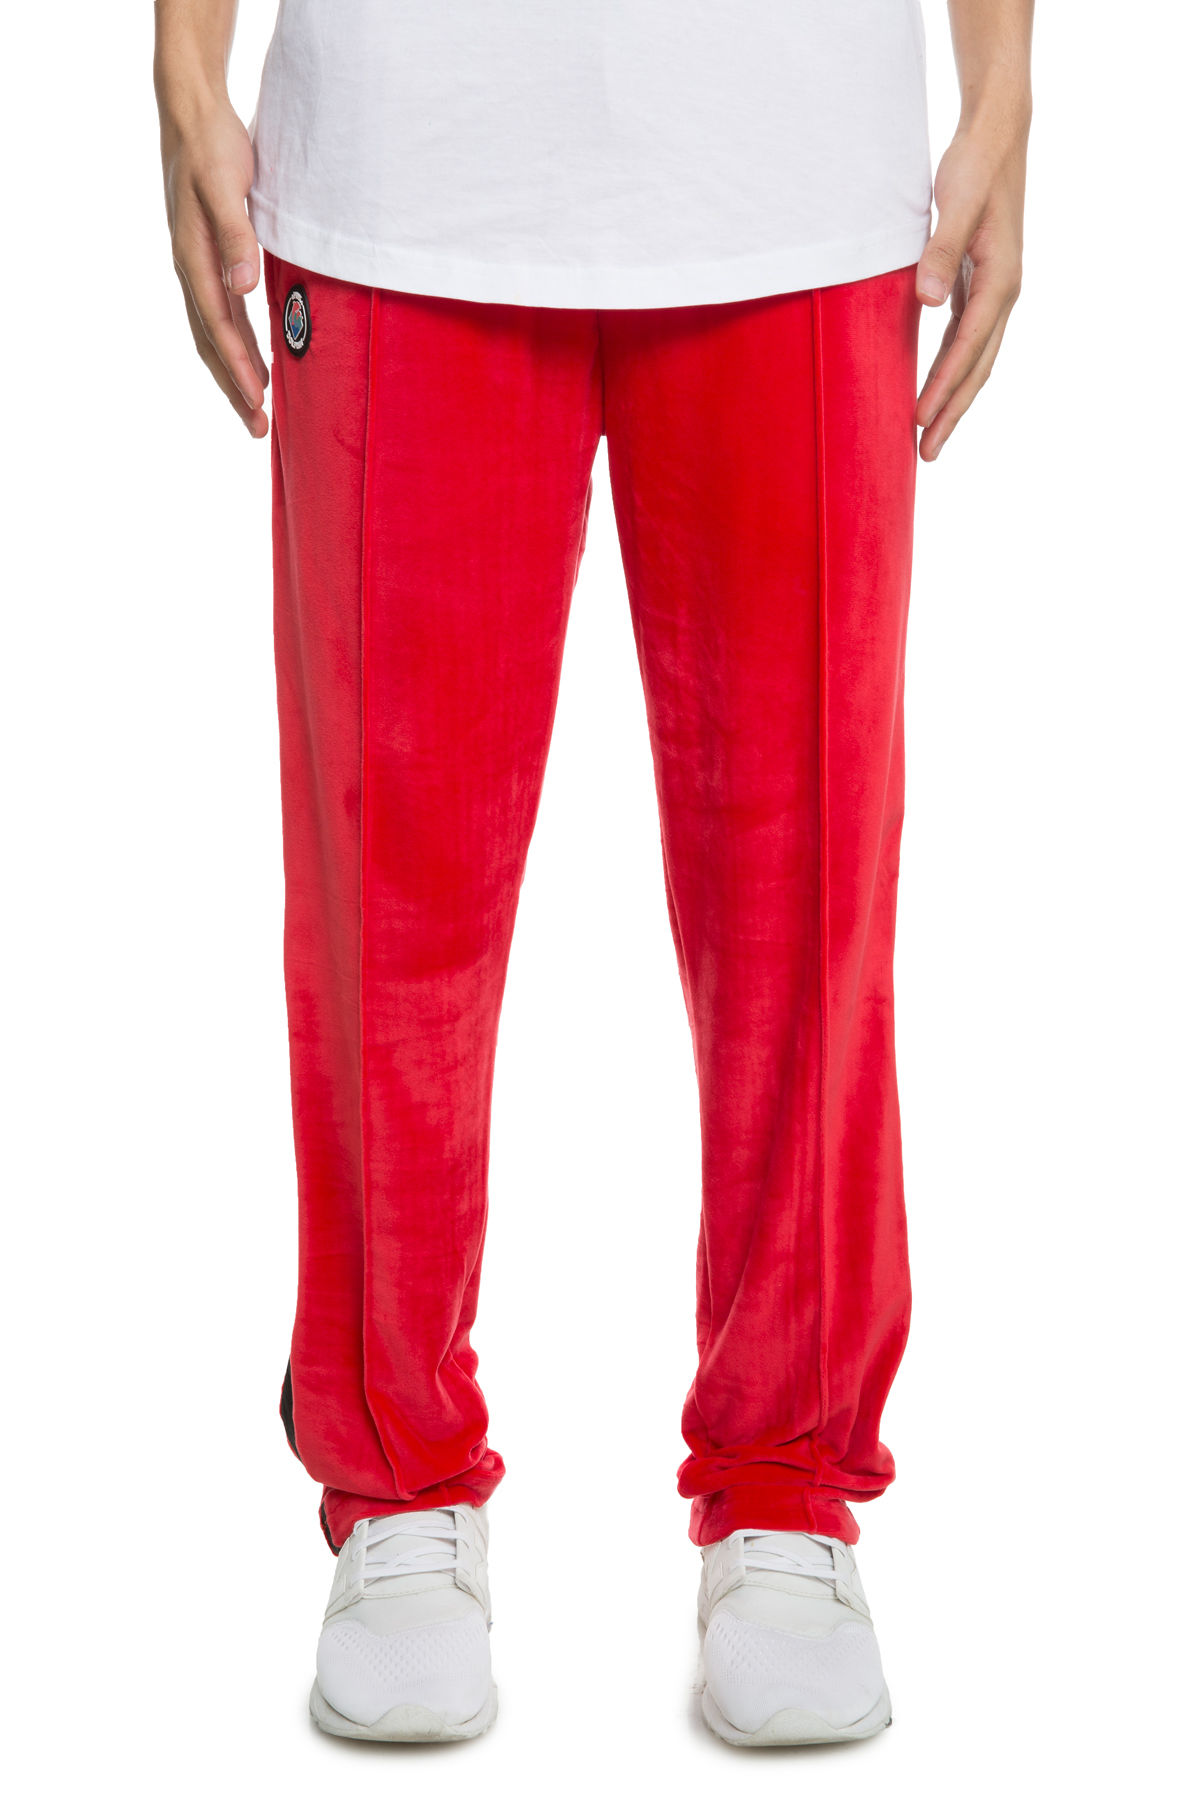 Image of The Tech Velour Pants 3.0 in Red